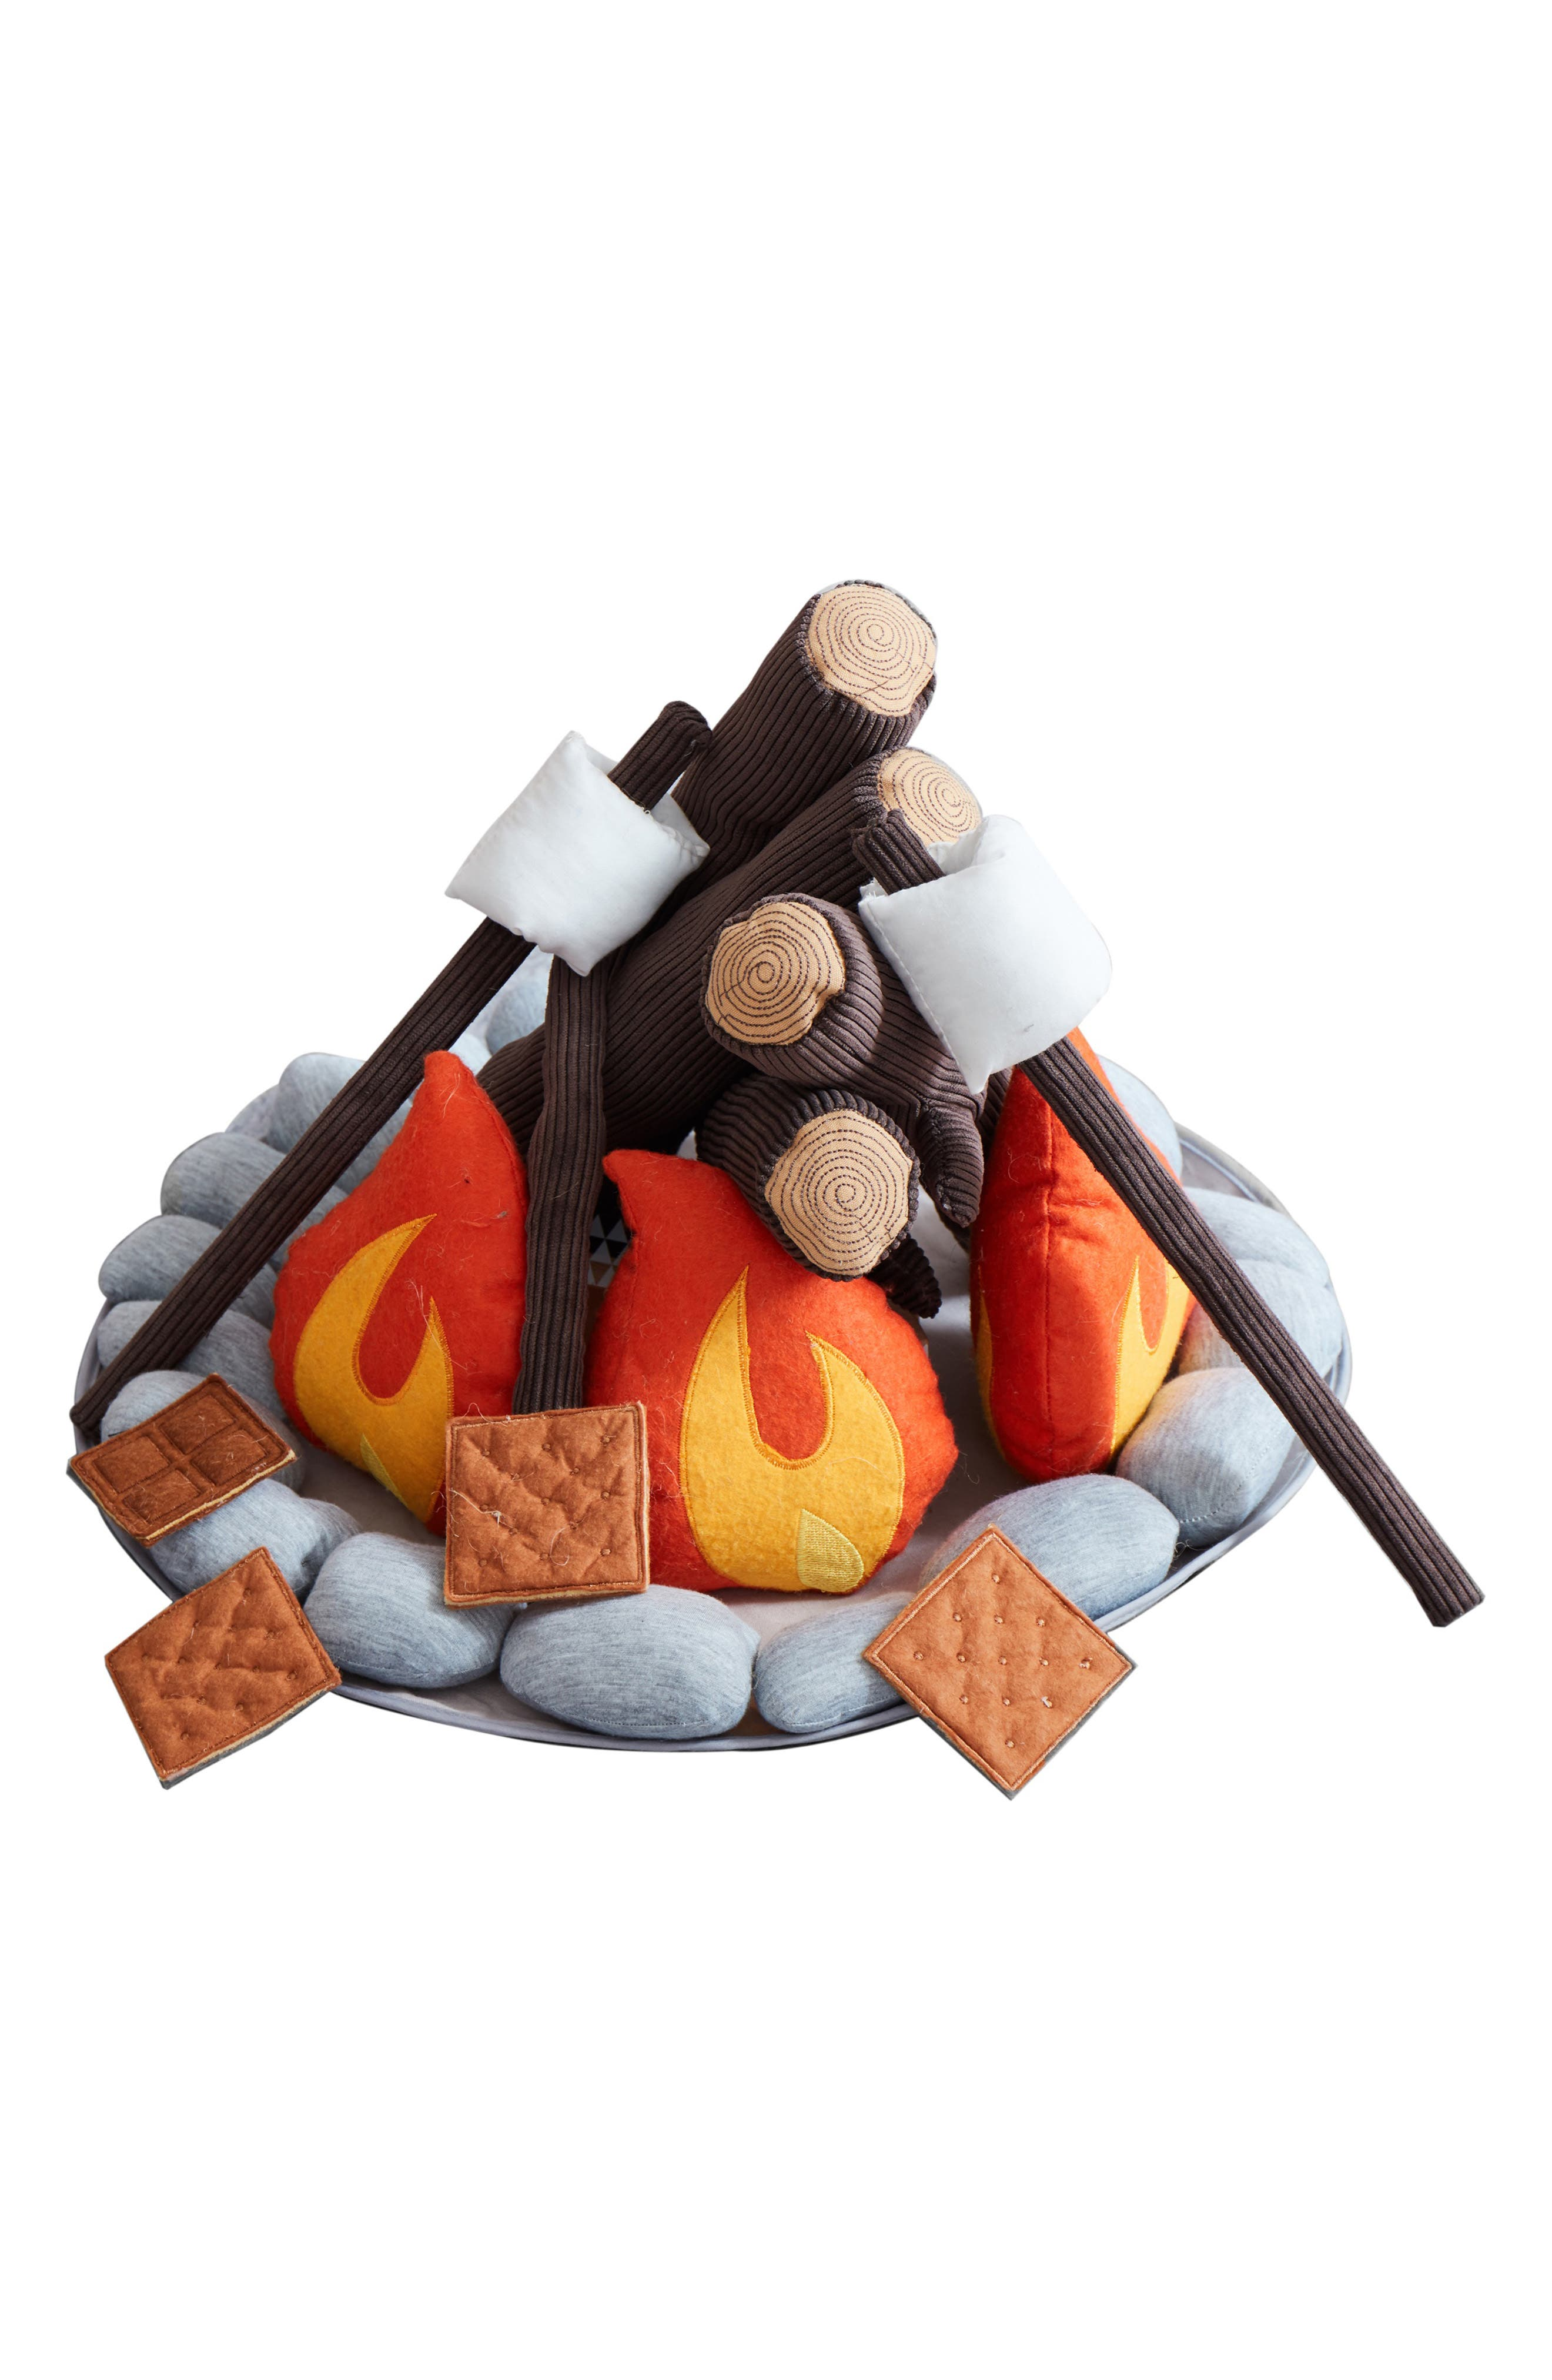 Asweets Campout Campfire  SMores Set